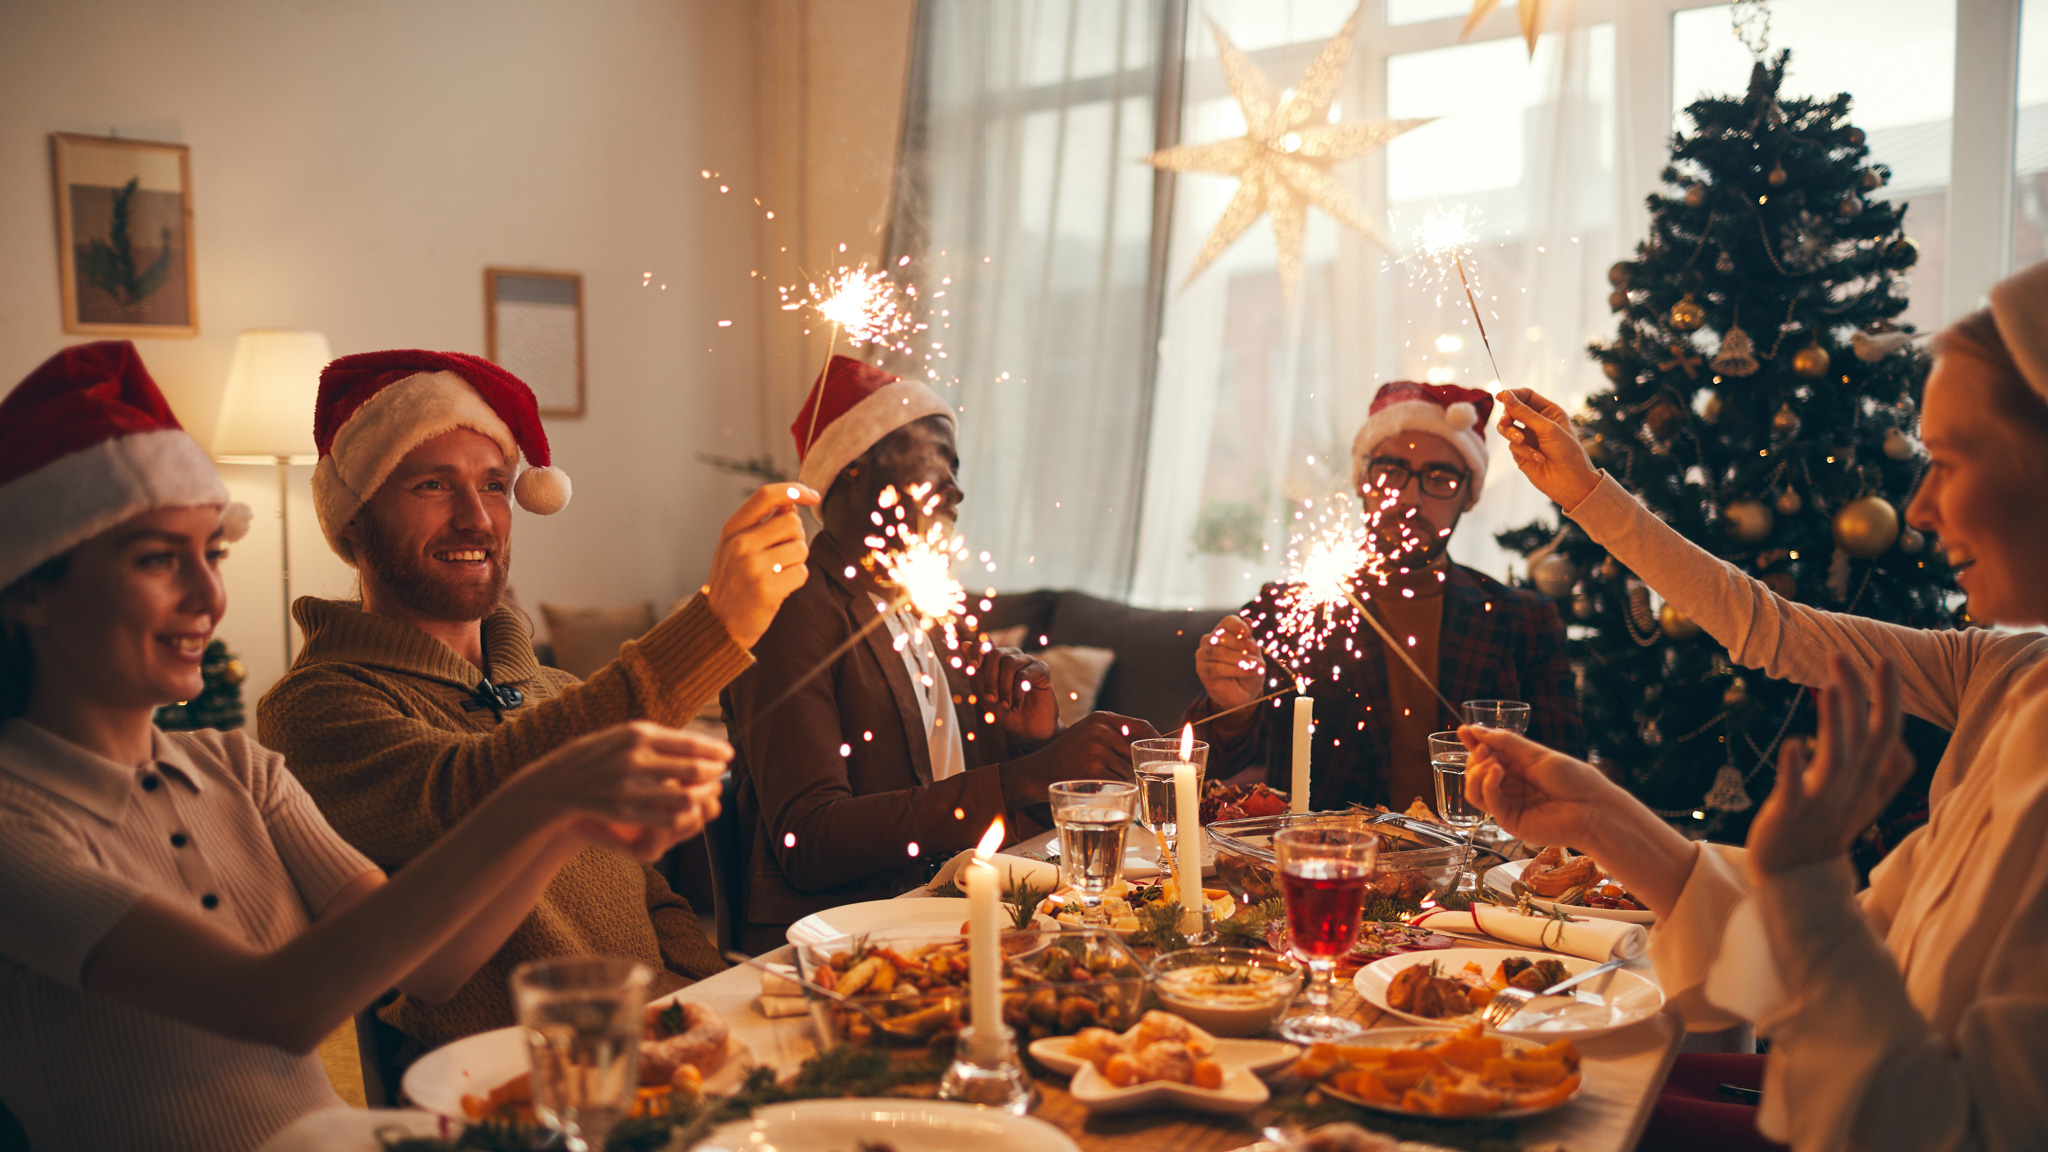 Multi-ethnic group of people raising glasses while enjoying Christmas dinner at home